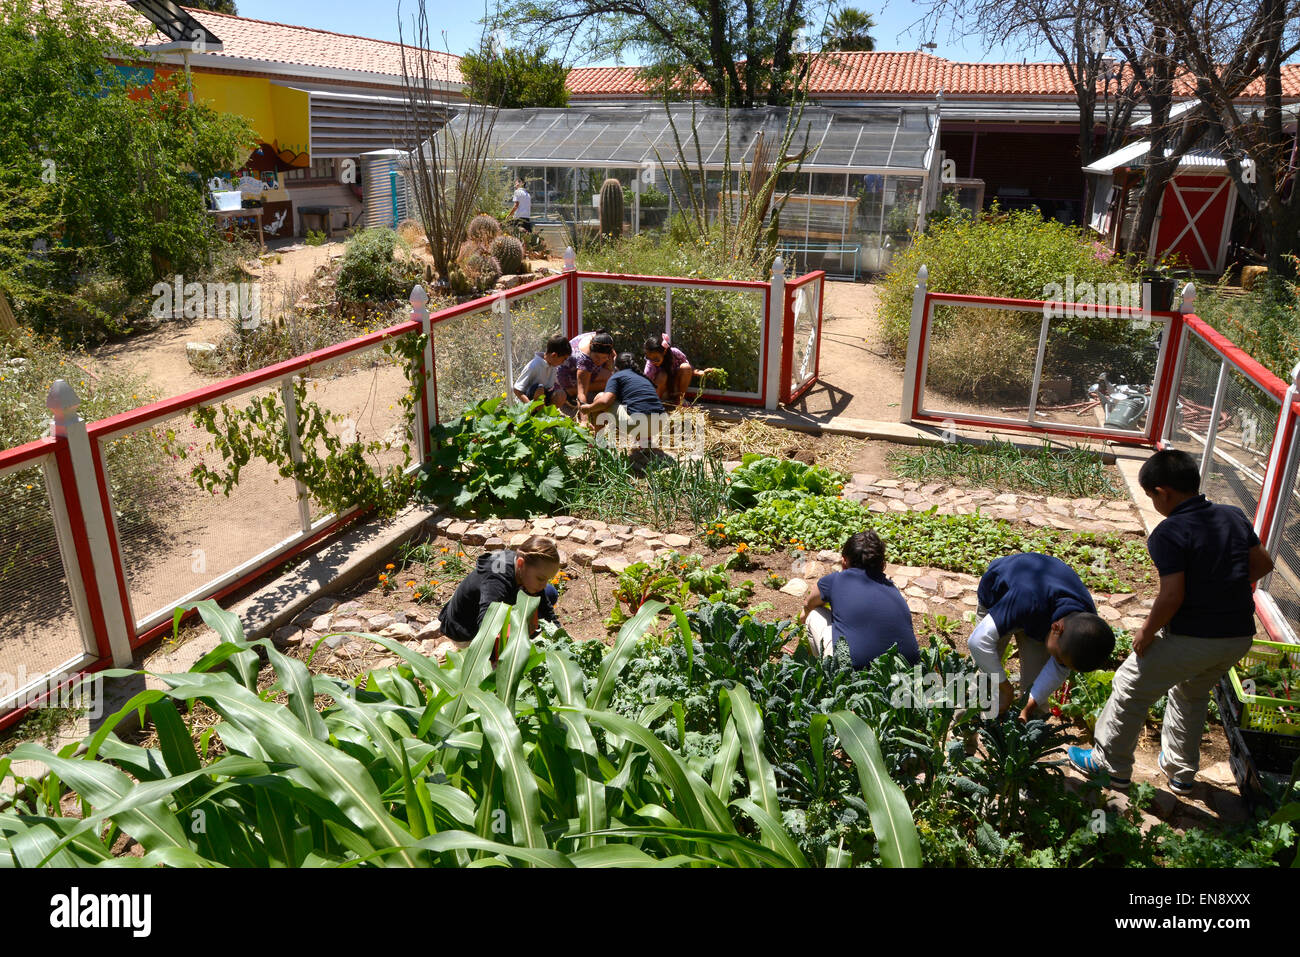 Captivating 29 April, 2015: Students Work In The School Garden At Manzo Elementary  School, Tucson, Arizona, USA. The School Was The First In TUSD To Be  Certified For ...